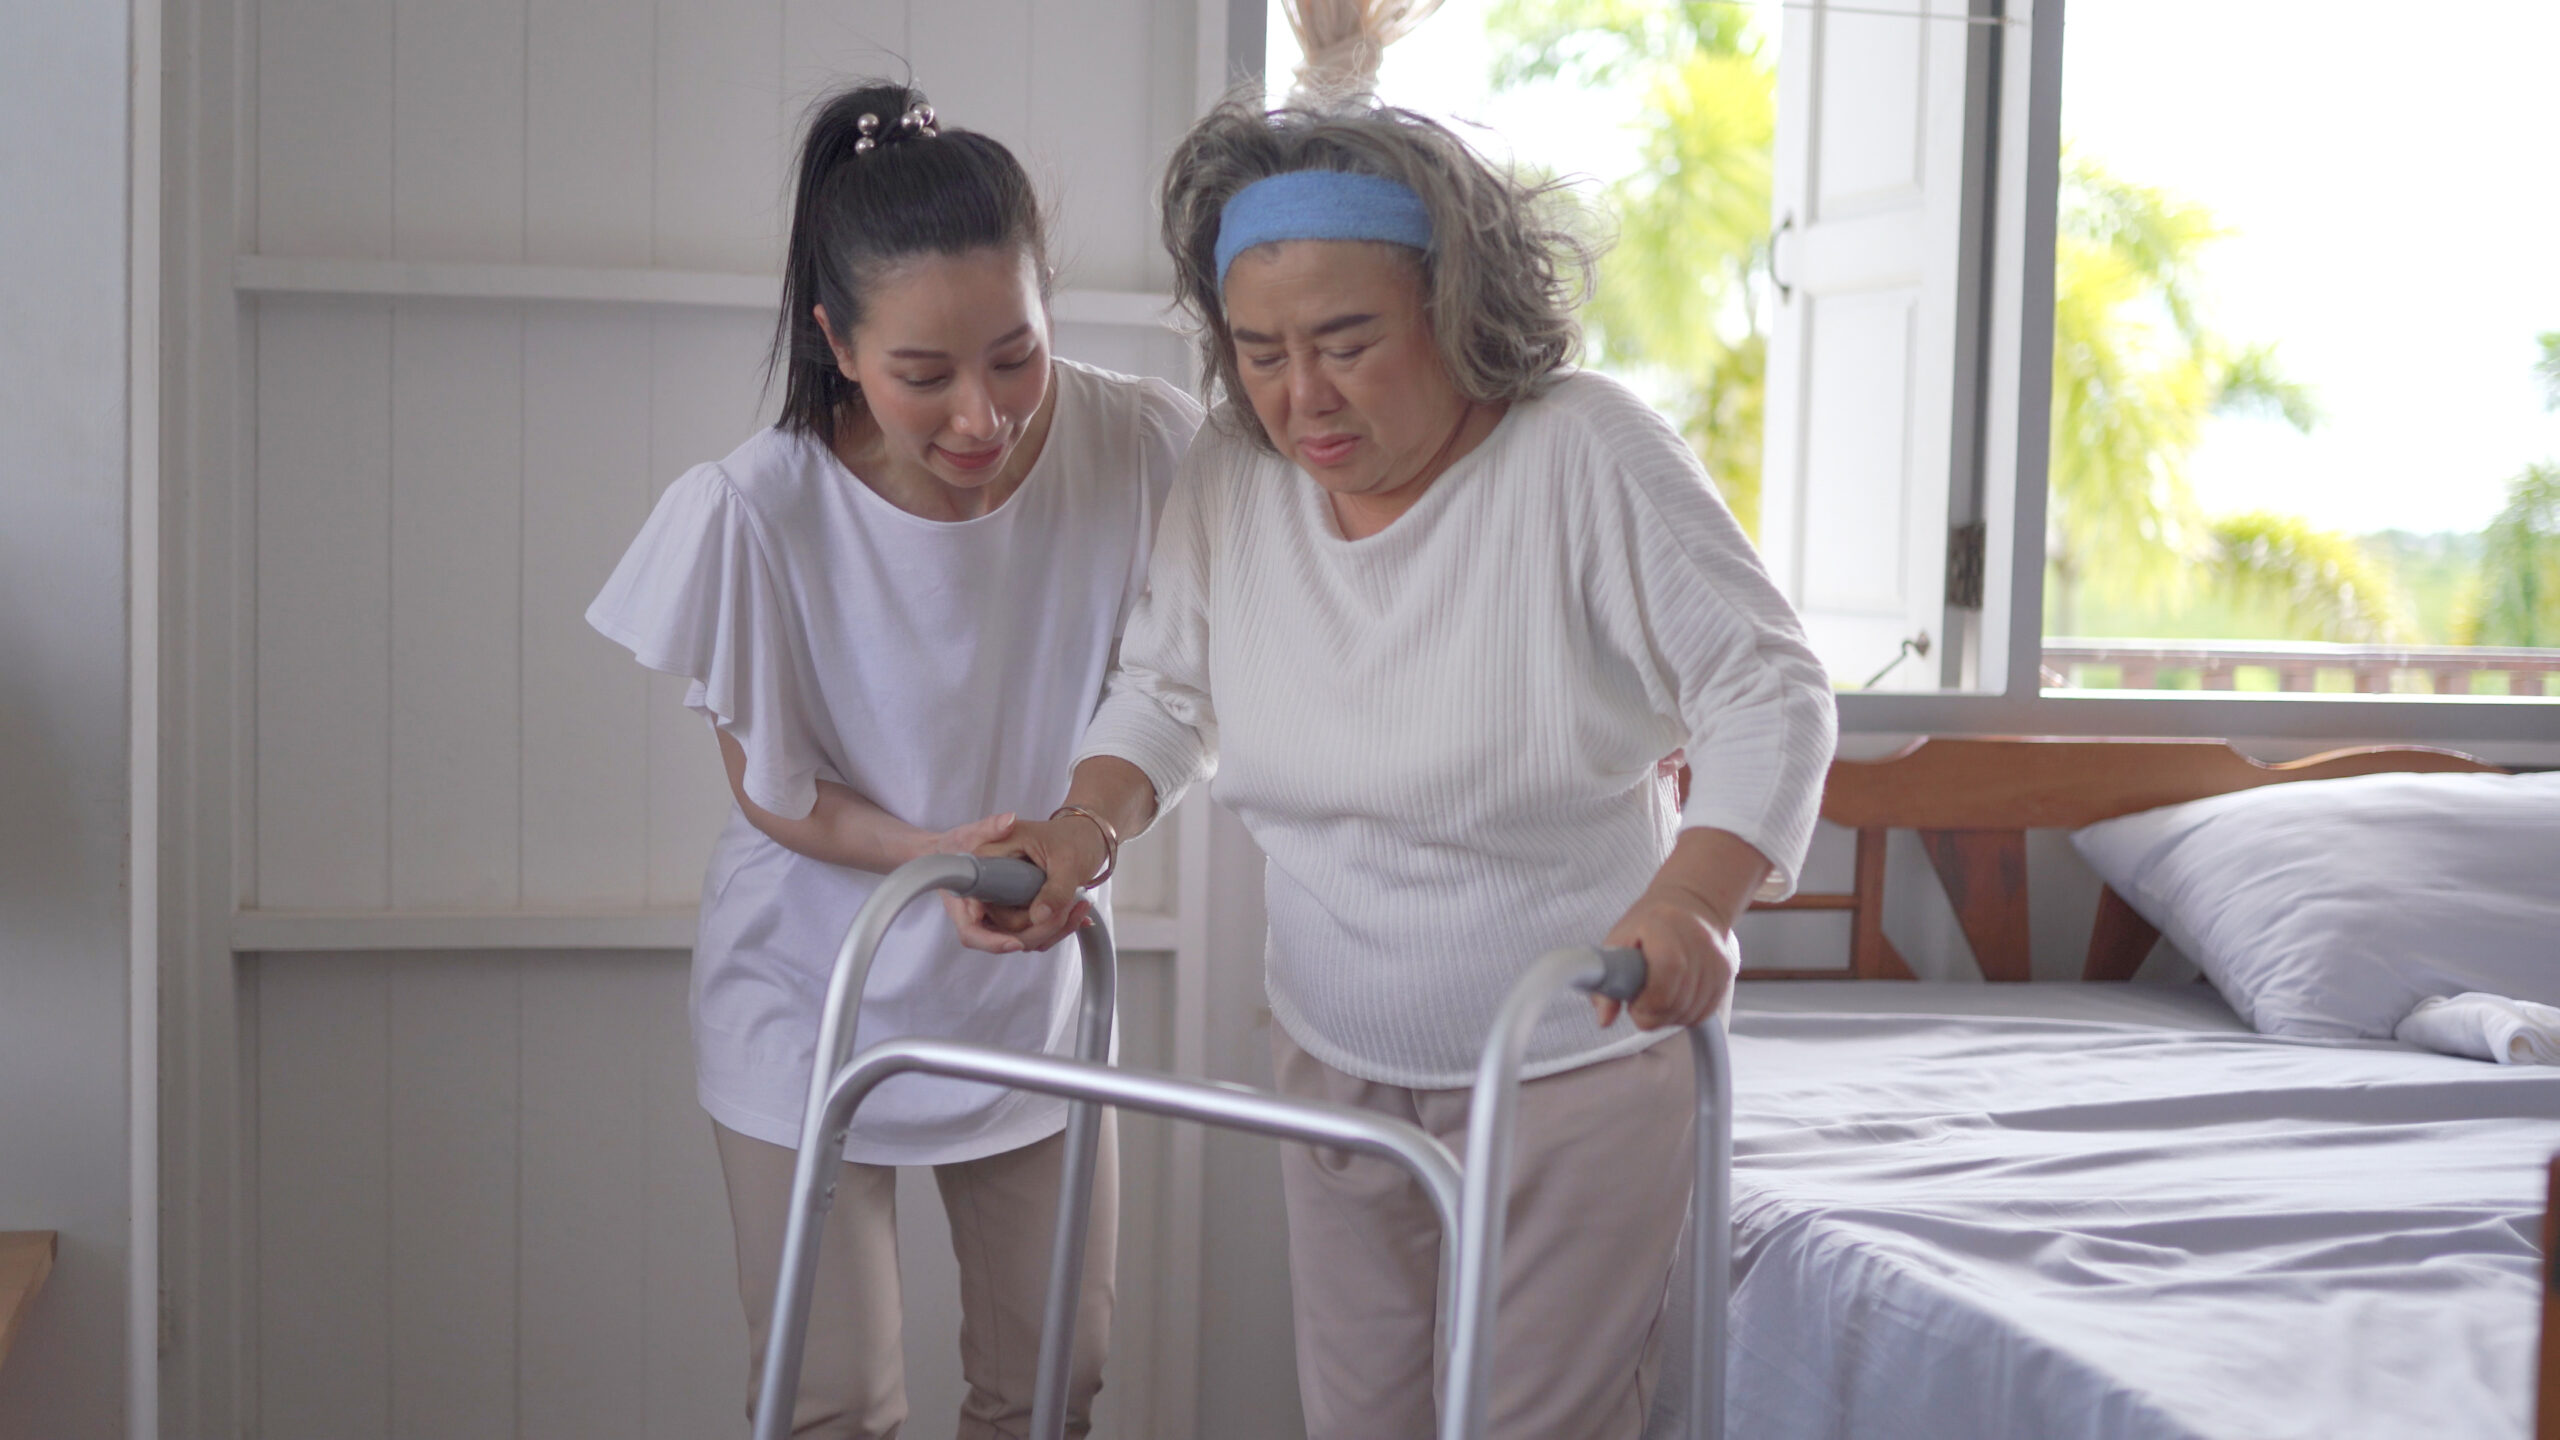 Adult daughter family caregiver supporting senior mother using a walker at home